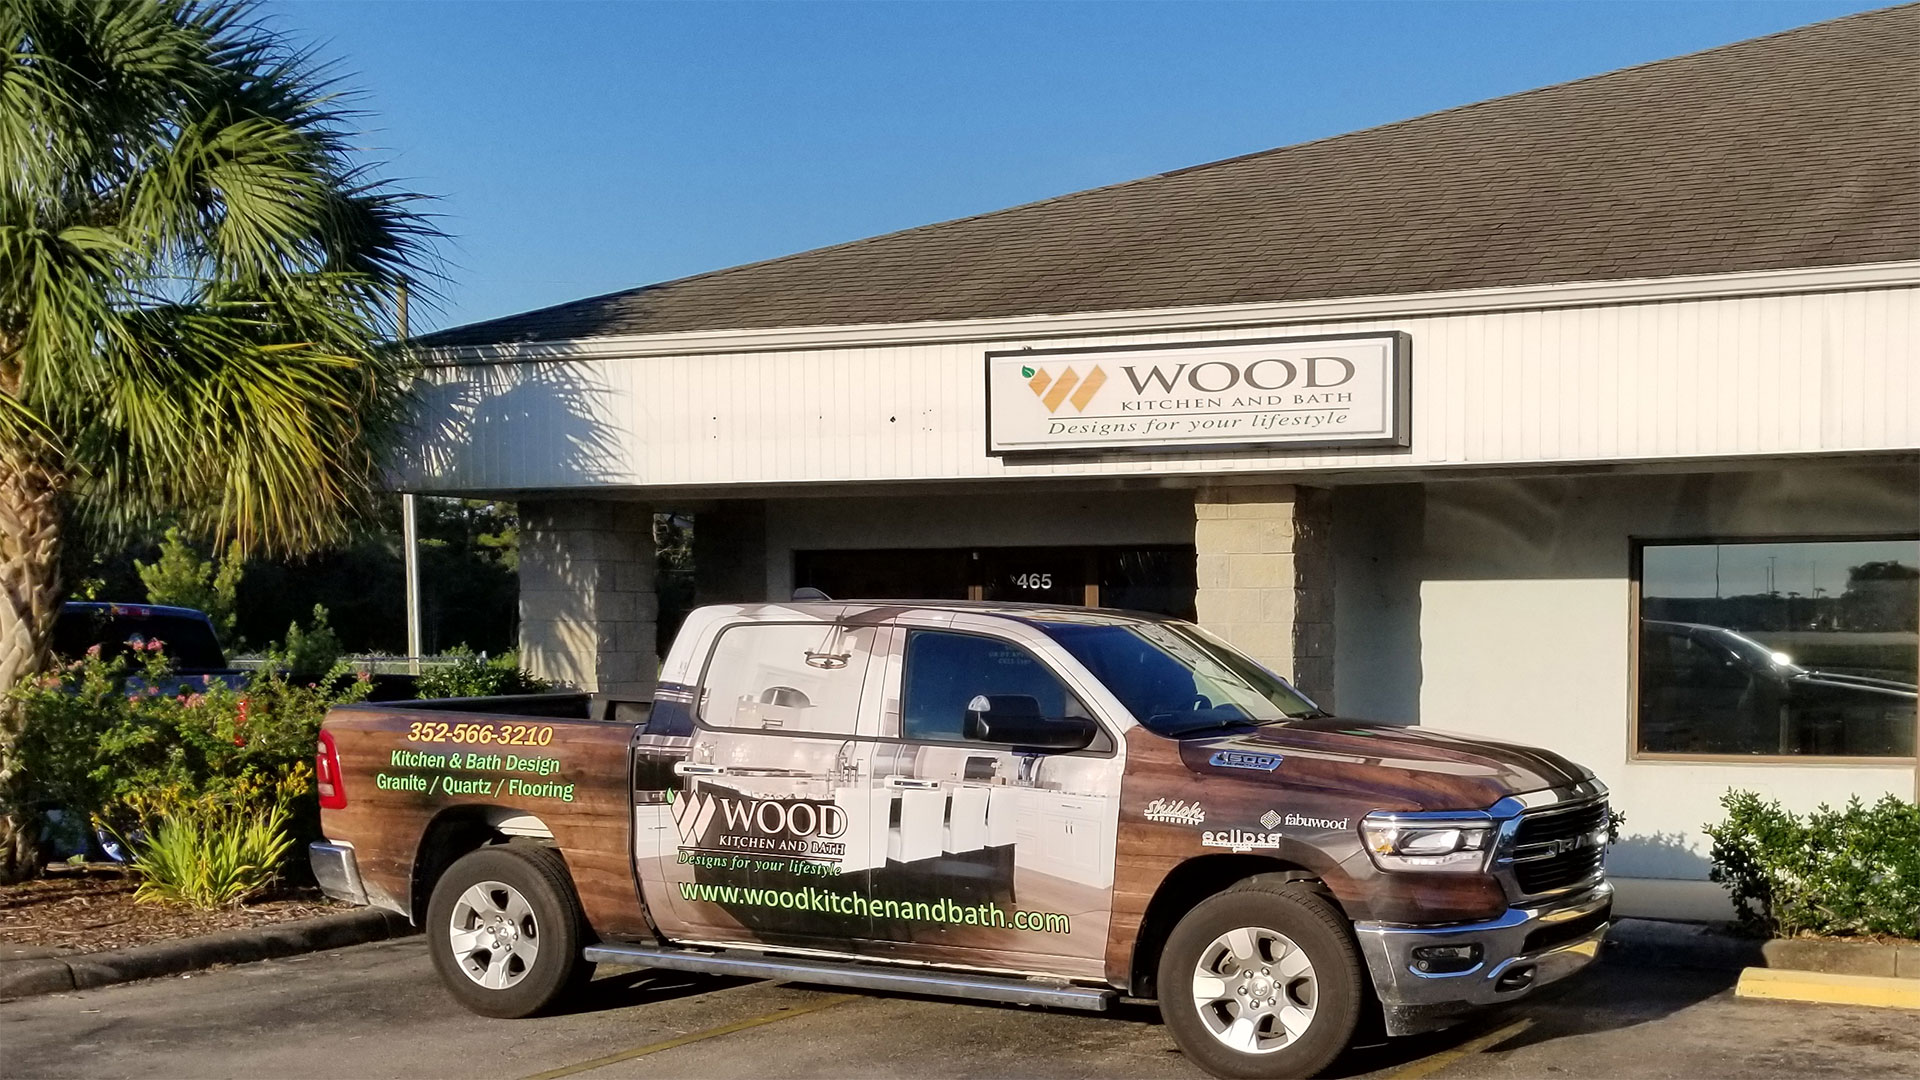 Wood Kitchen and Bath, LLC image